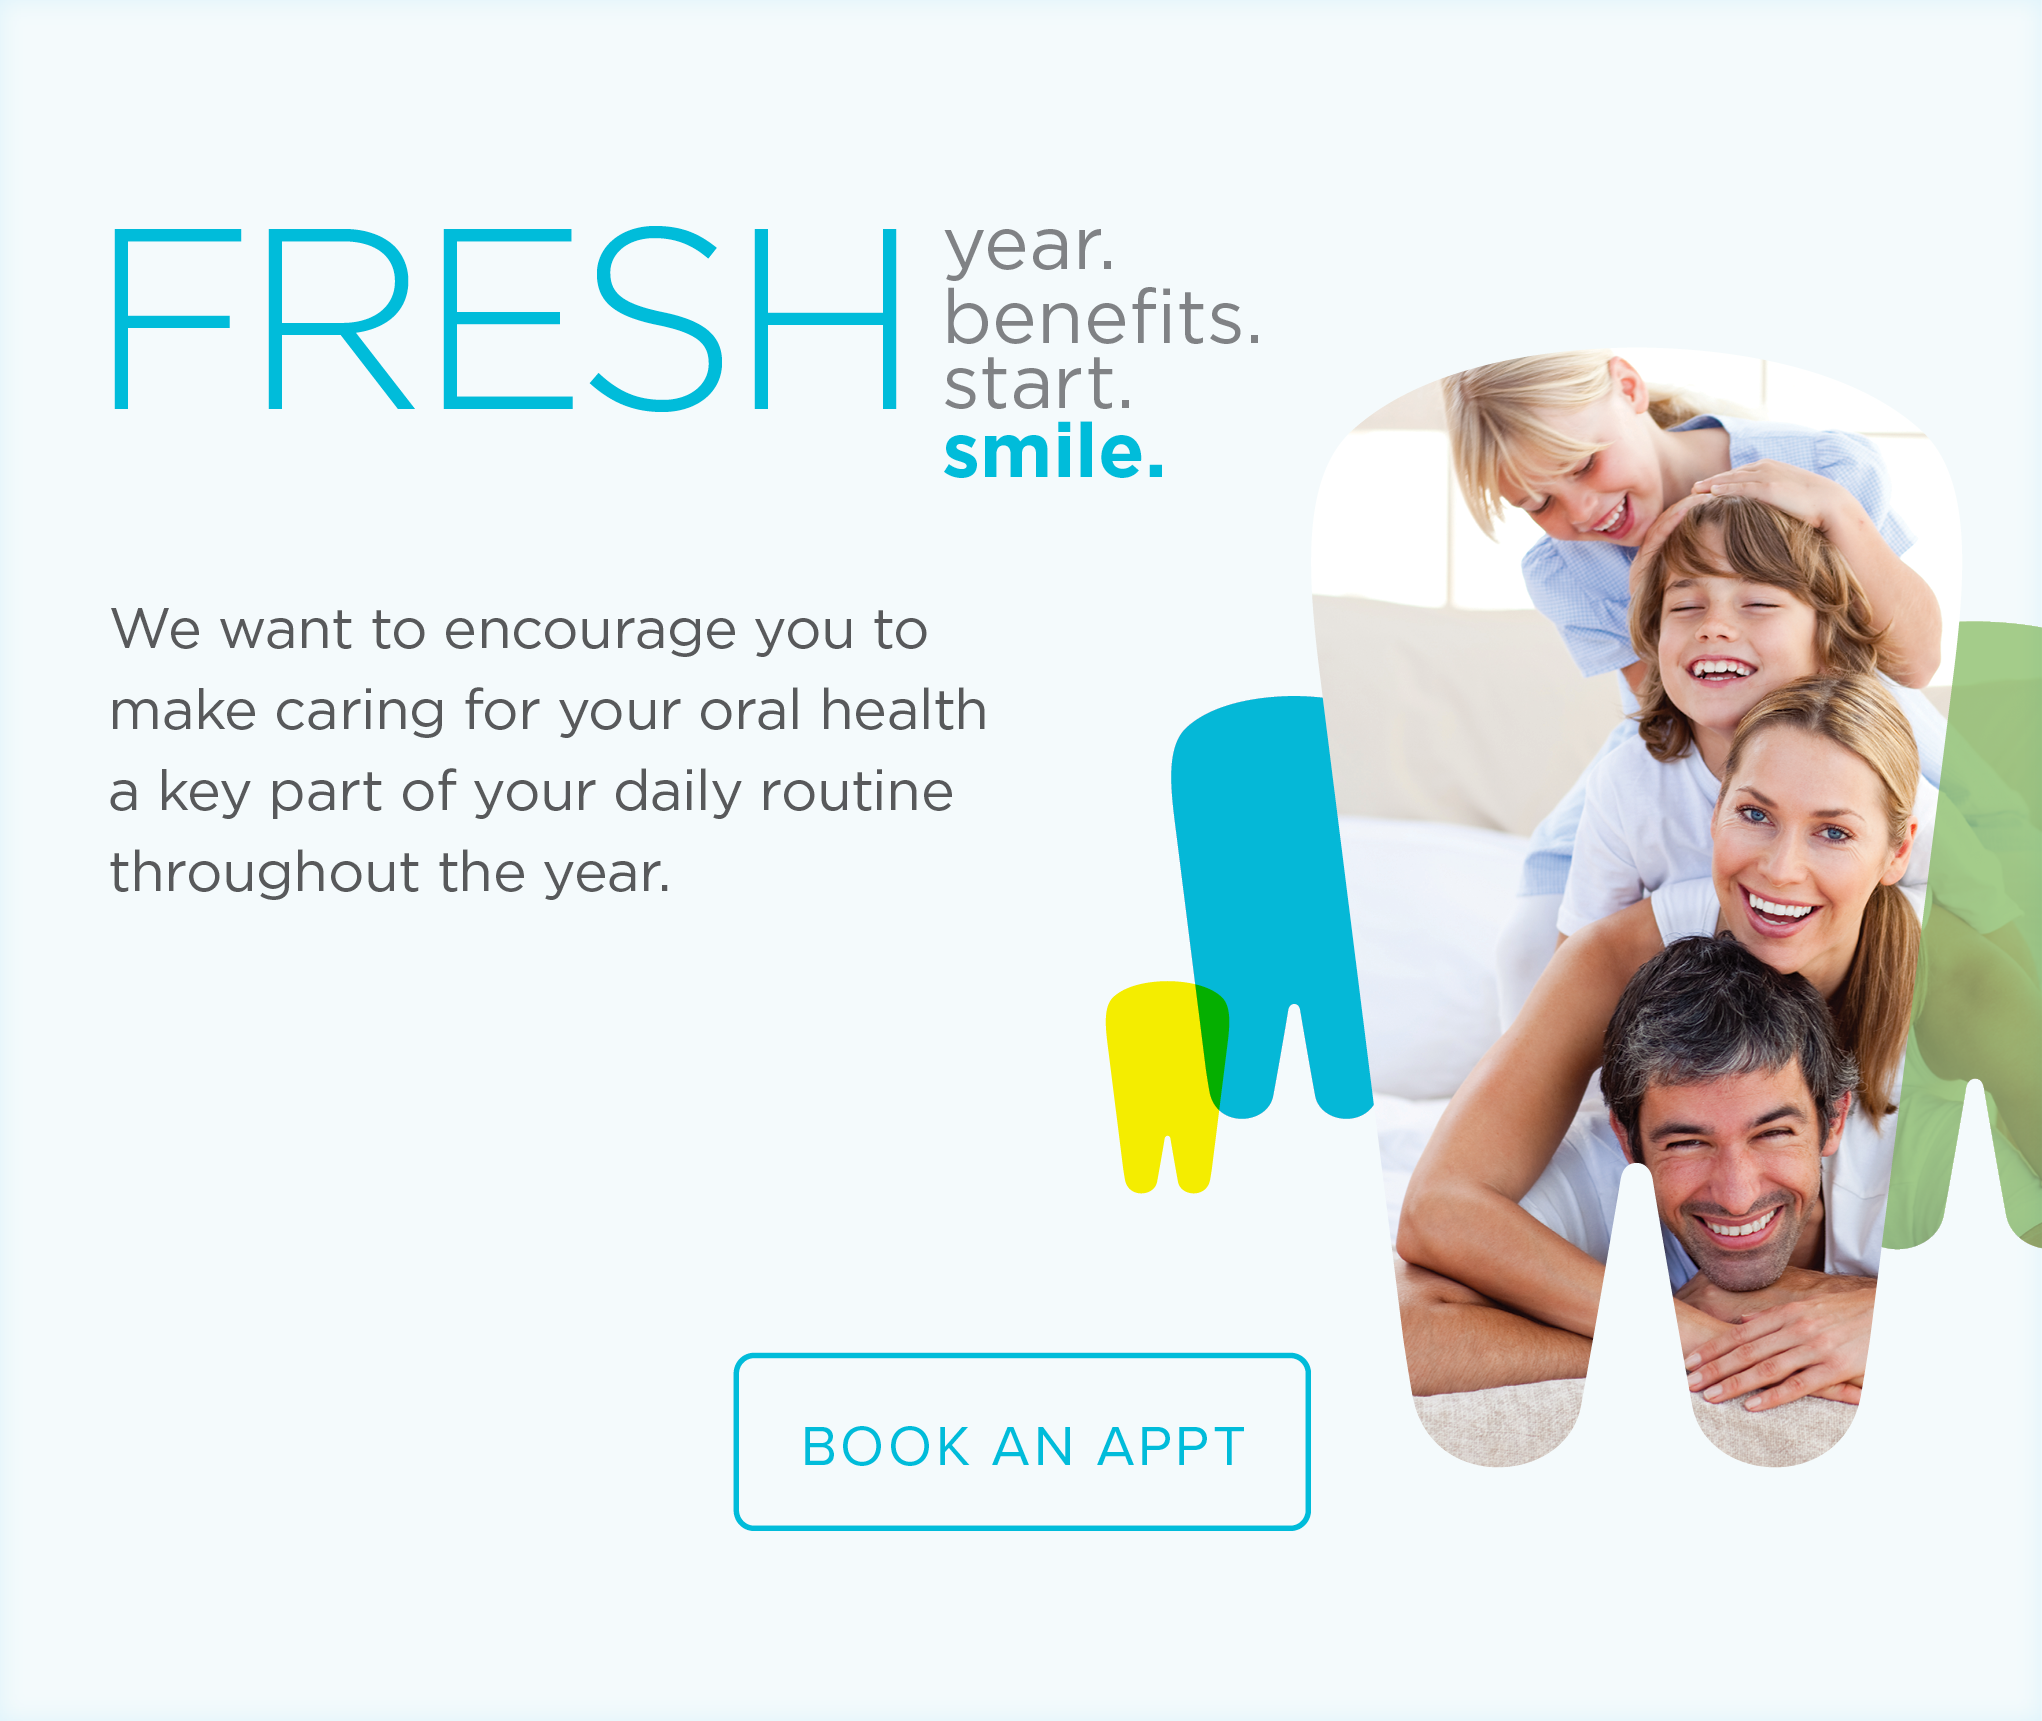 Rancho Cucamonga Smiles Dentistry - Make the Most of Your Benefits